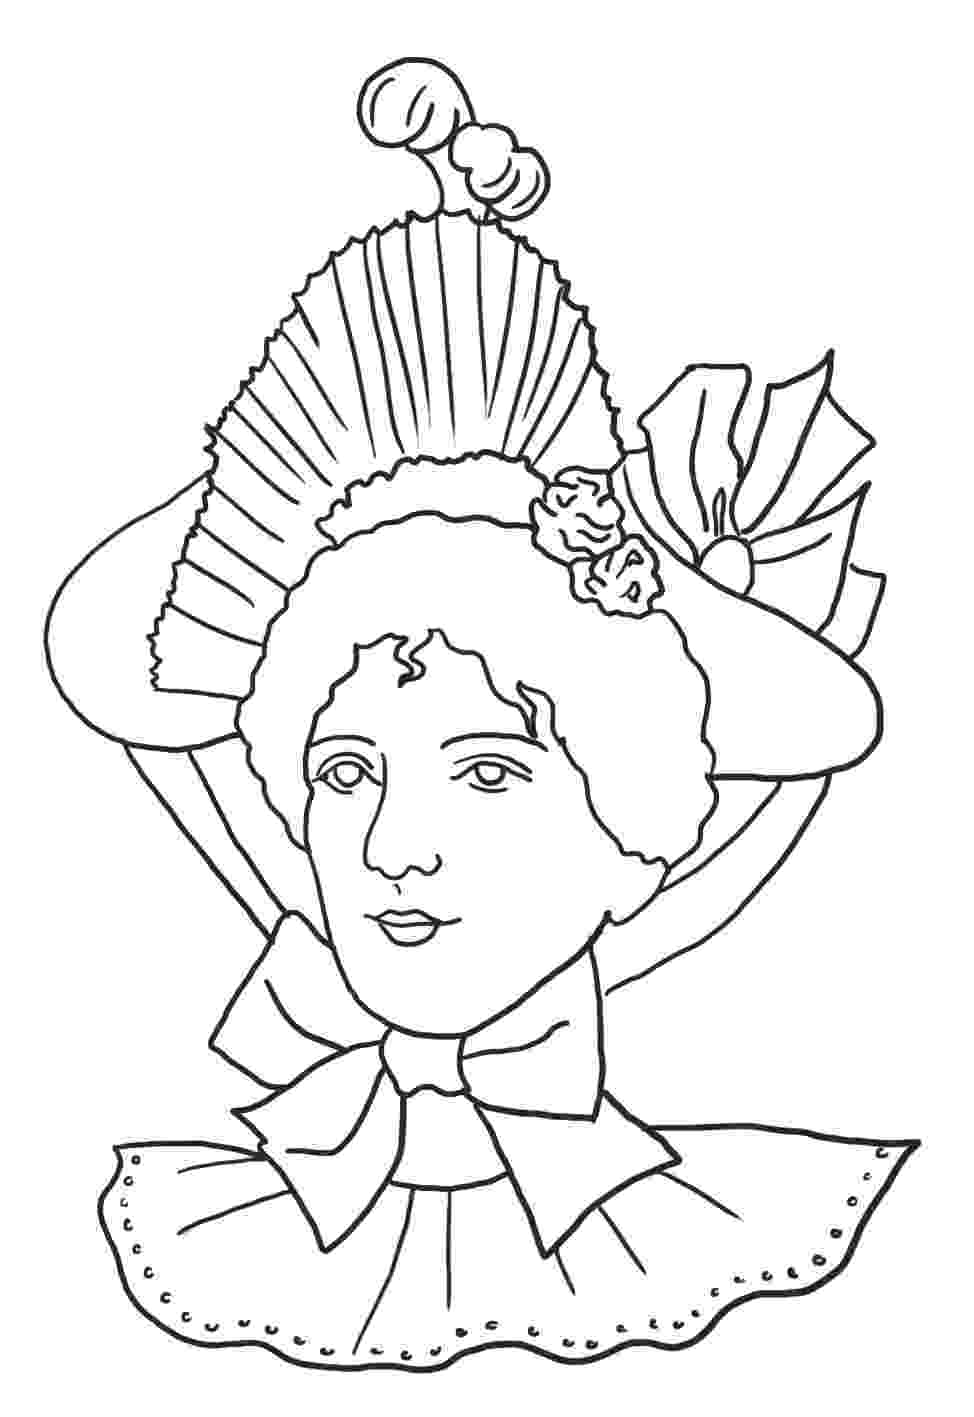 victorian coloring pages victorian printable coloring pictures victorian coloring pages 1 2